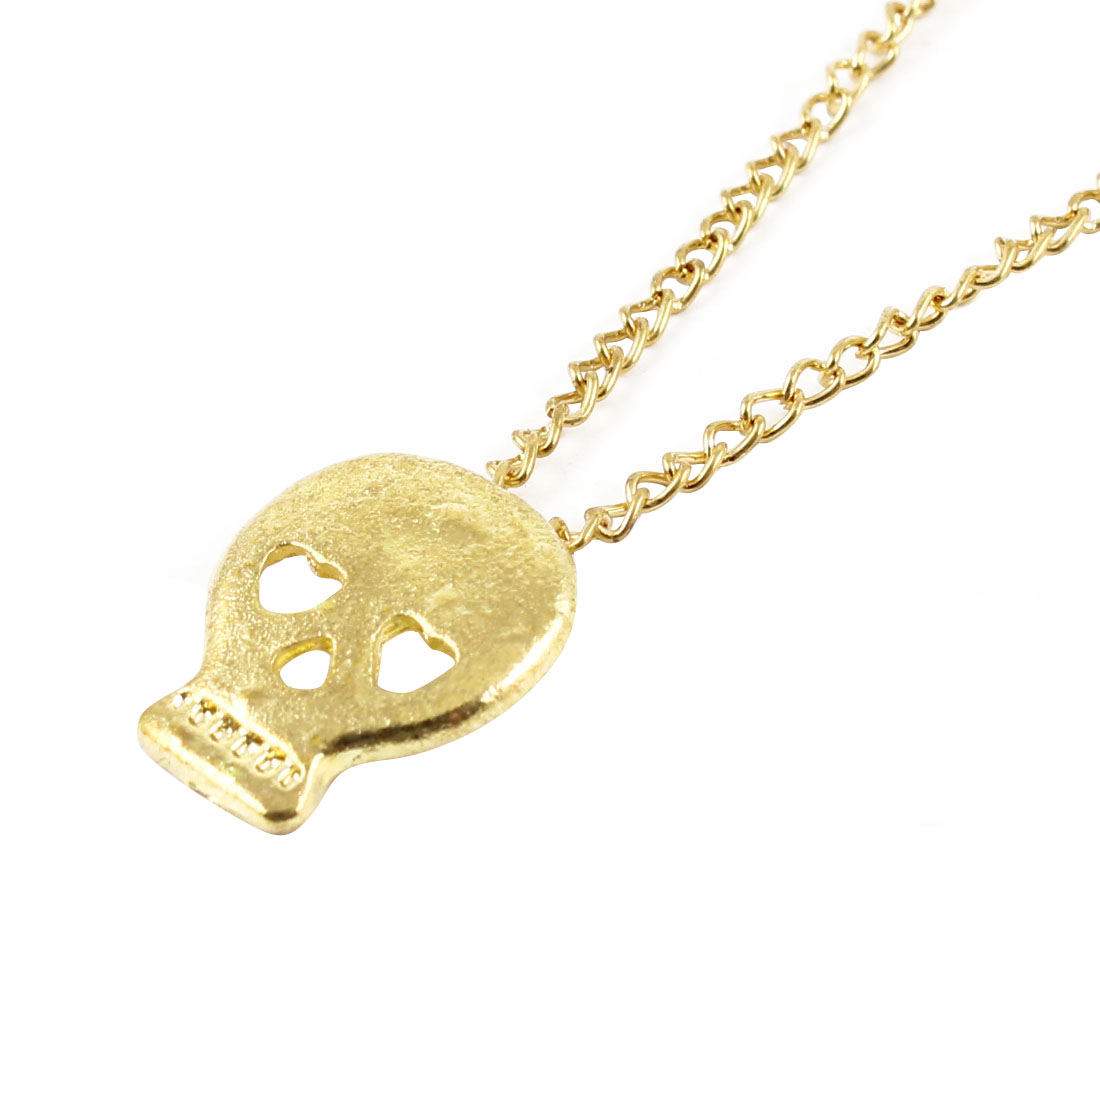 Ladies Lobster Closure Skull Shape Detailing Necklace Gold Tone